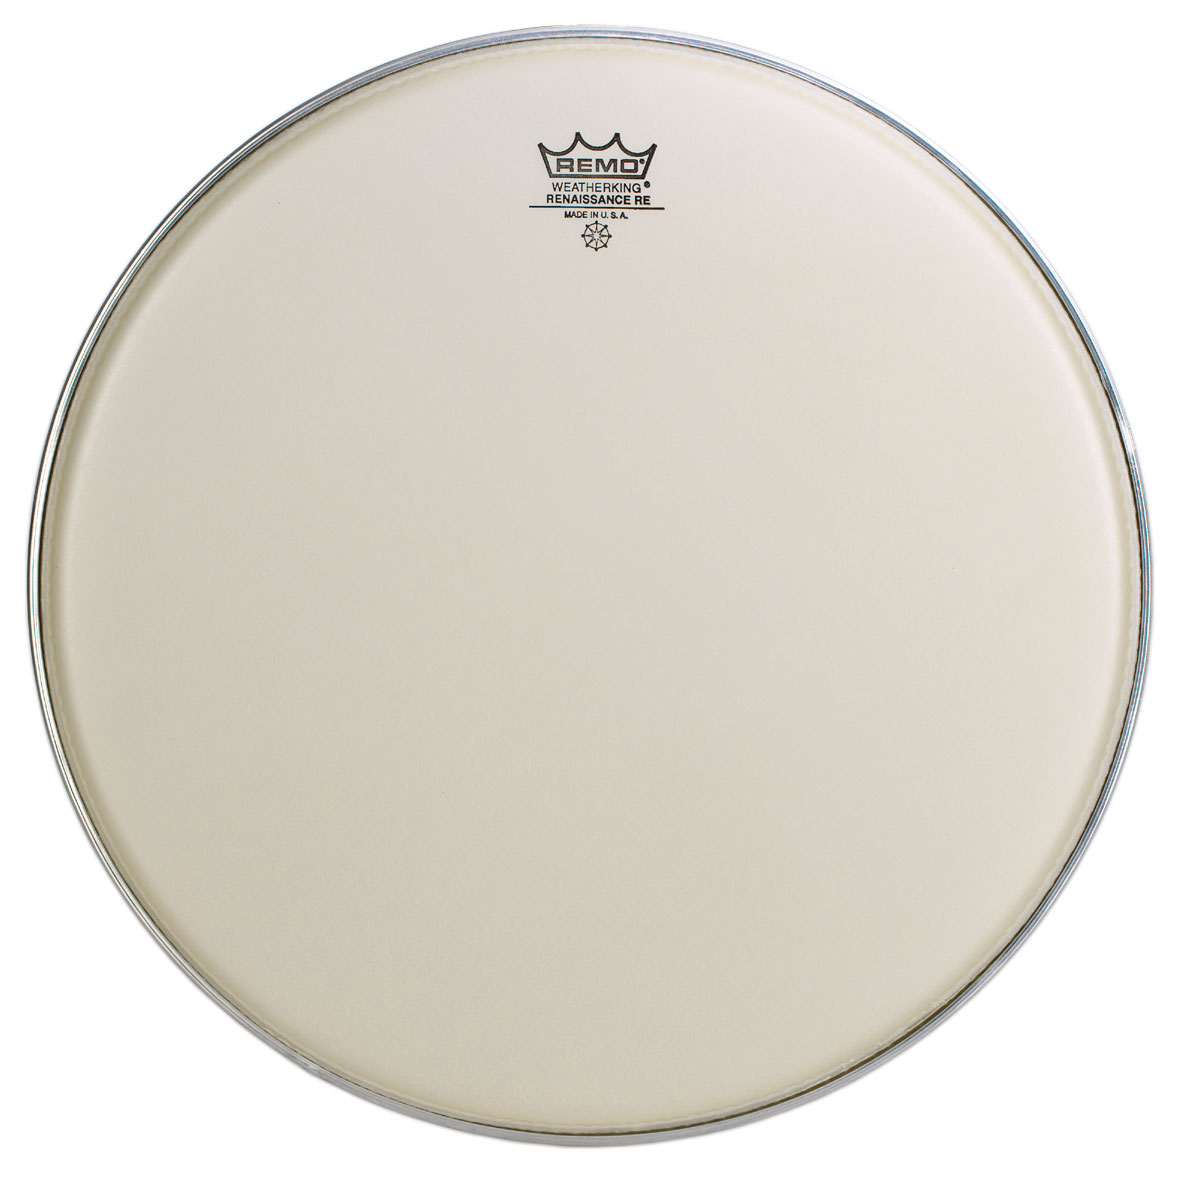 "Remo 12"" Emperor Renaissance Crimplock Marching Tenor Drum Head"